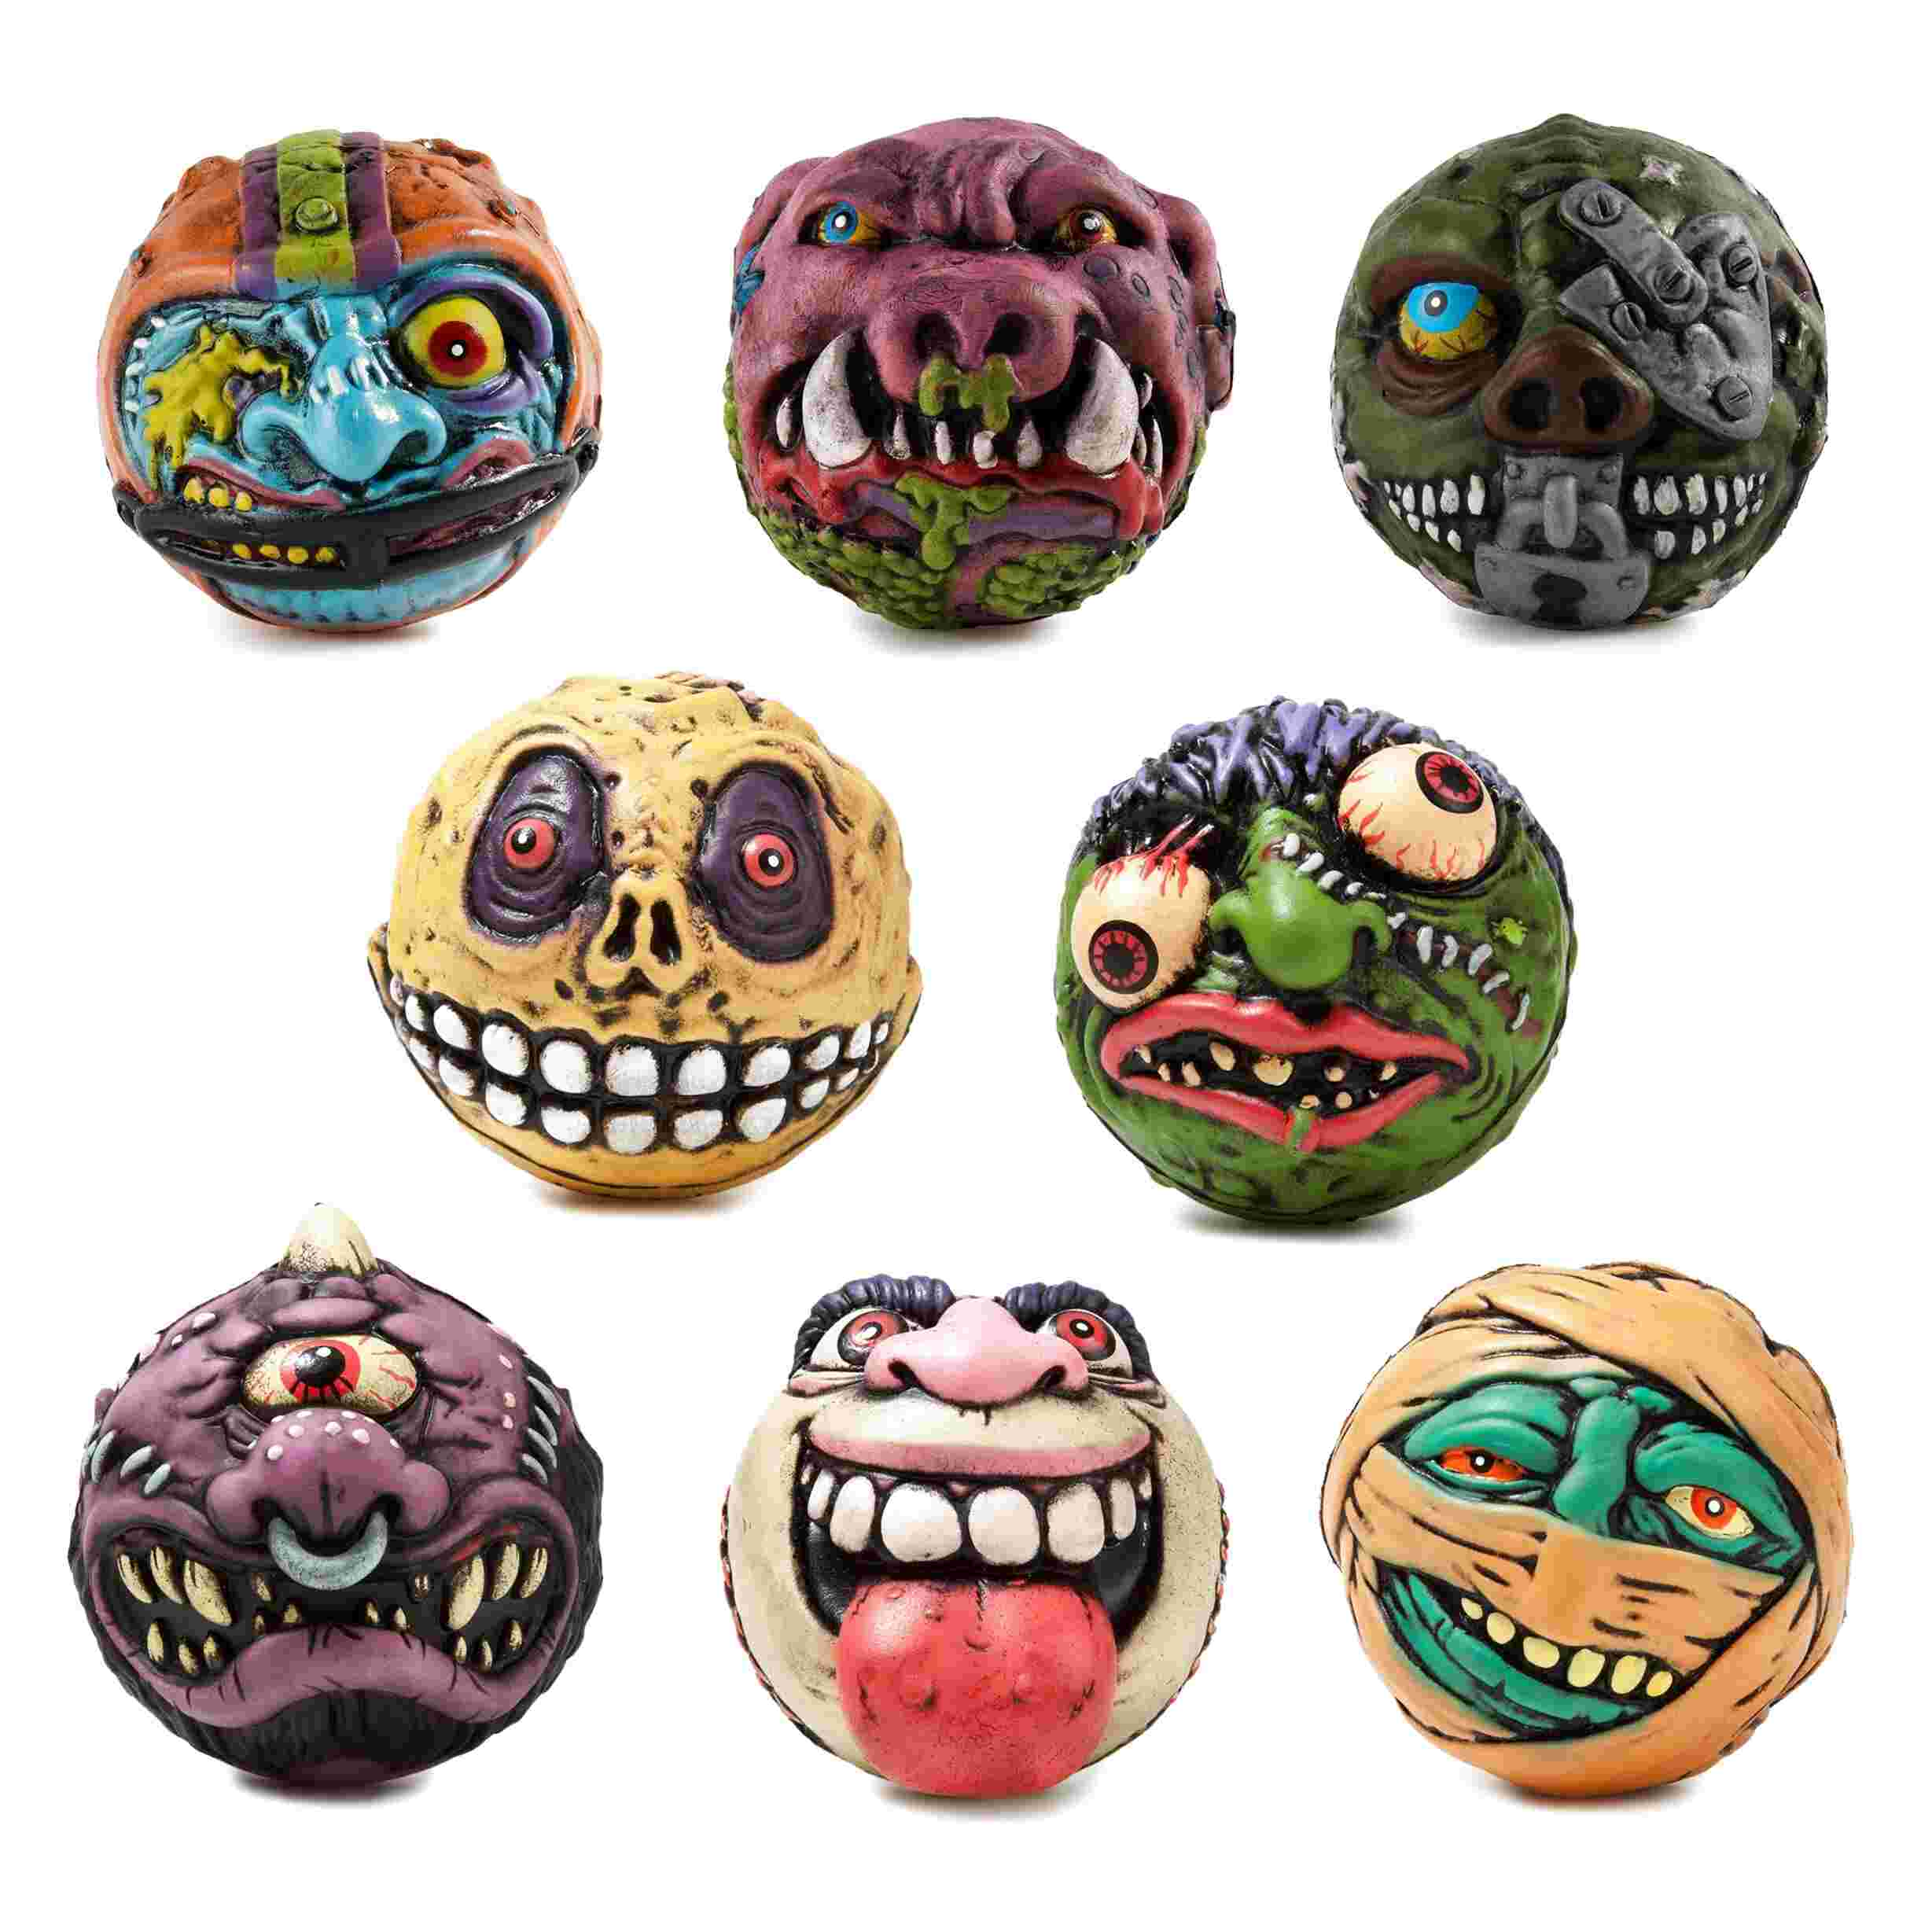 madballs toys for sale